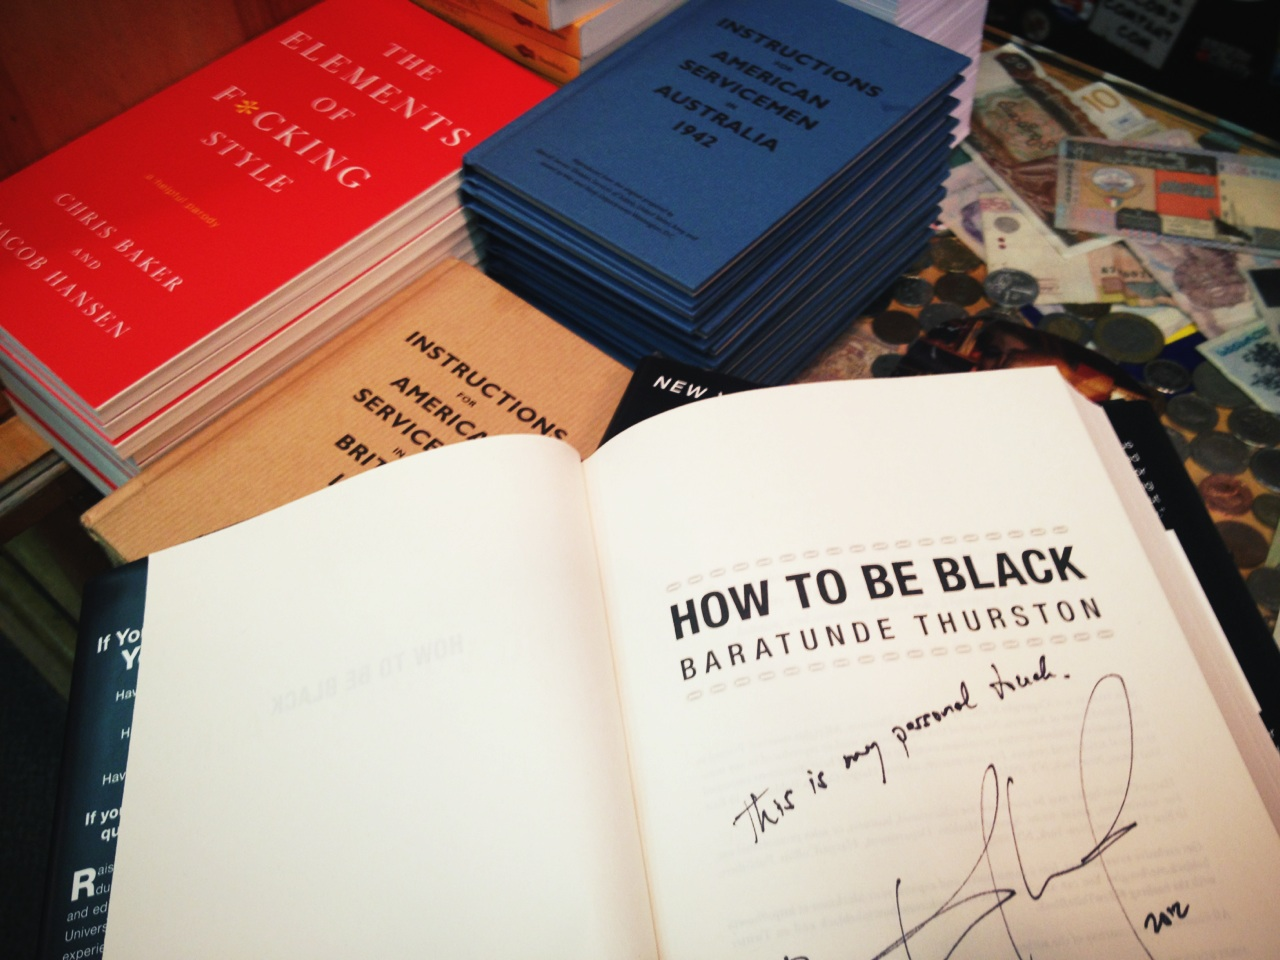 There are six signed copies of #HowToBeBlack at this store. #bookriots #getemwhiletheyreblack at Kramerbooks & Afterwords Cafe